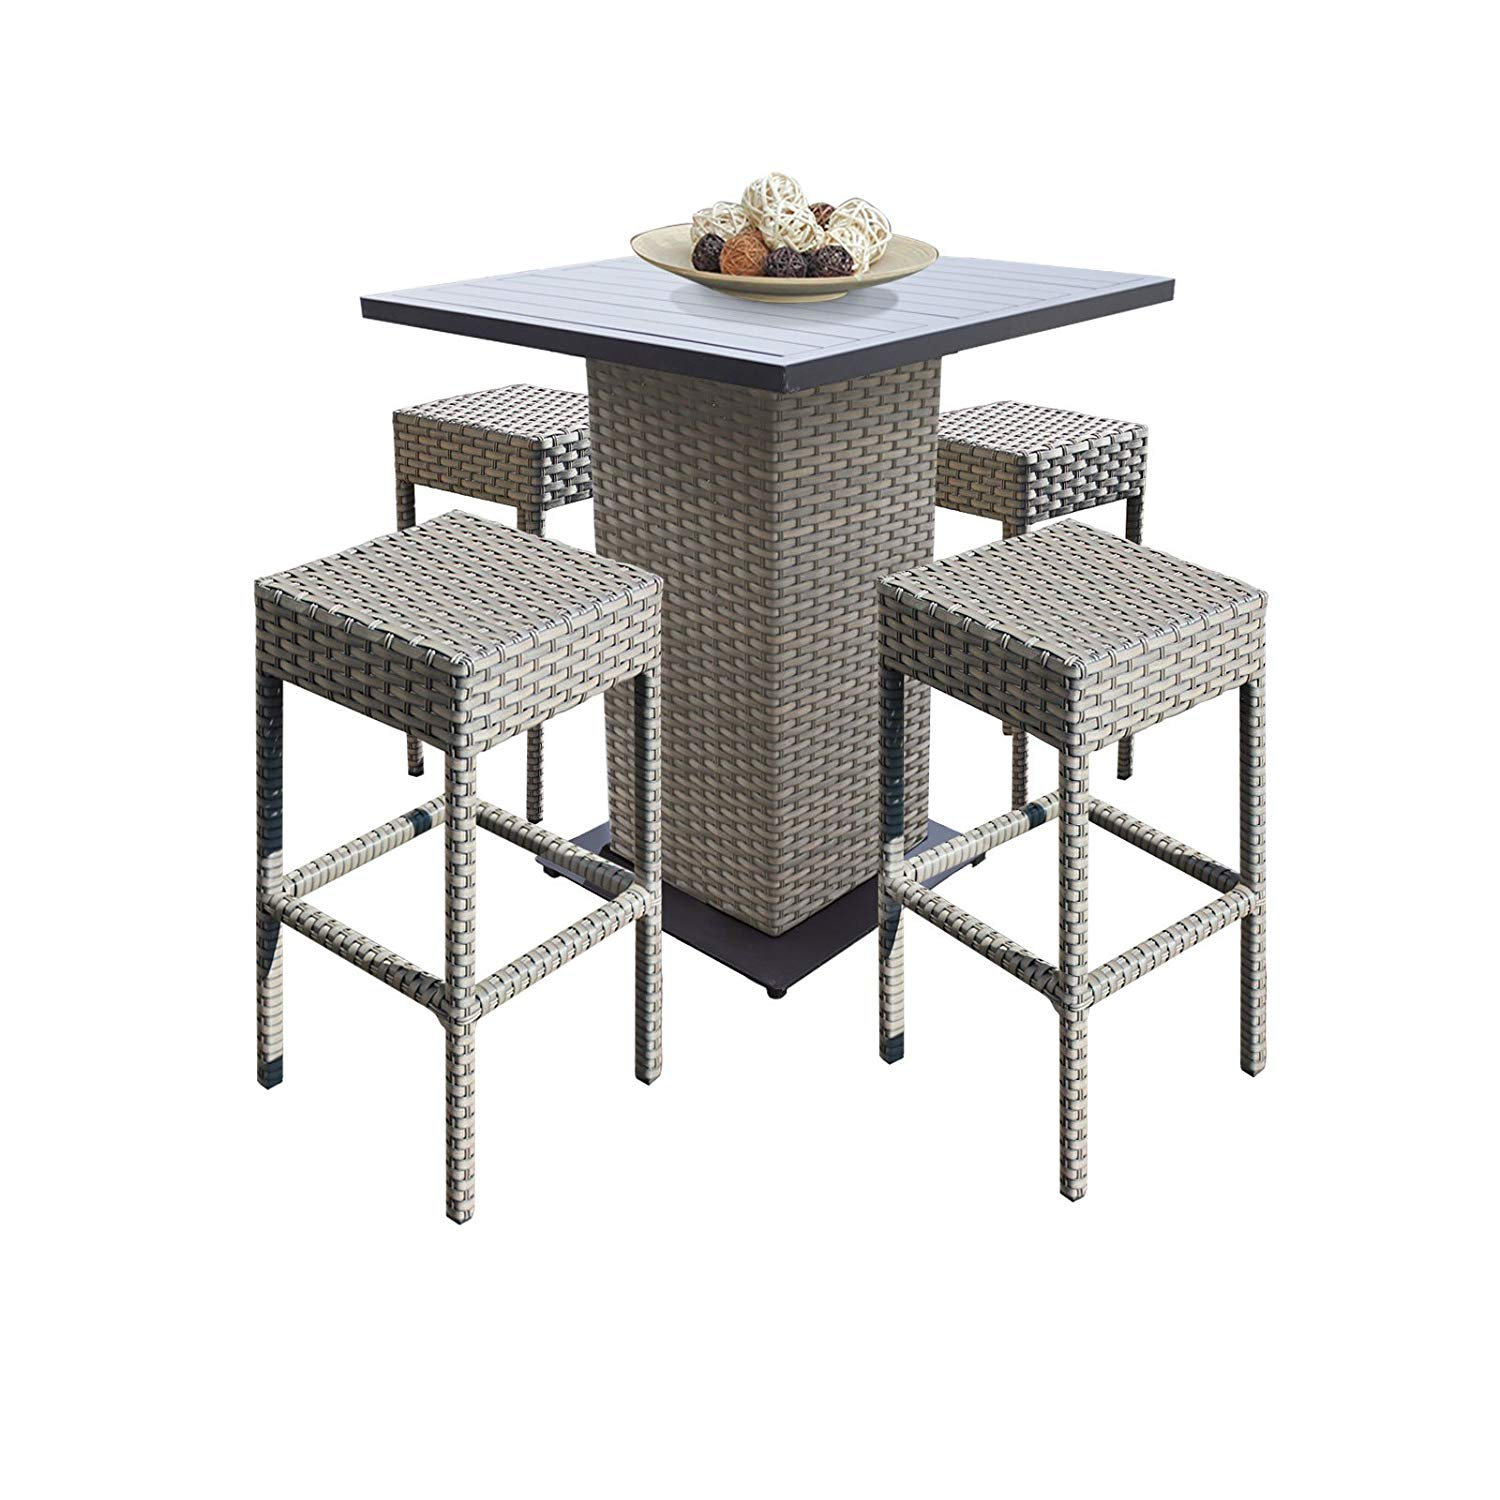 6d0feb8e08002 Get Quotations · TK Classics Oasis Outdoor Wicker Patio 5Piece Pub Table Set  with Backless Barstools Furniture, Grey